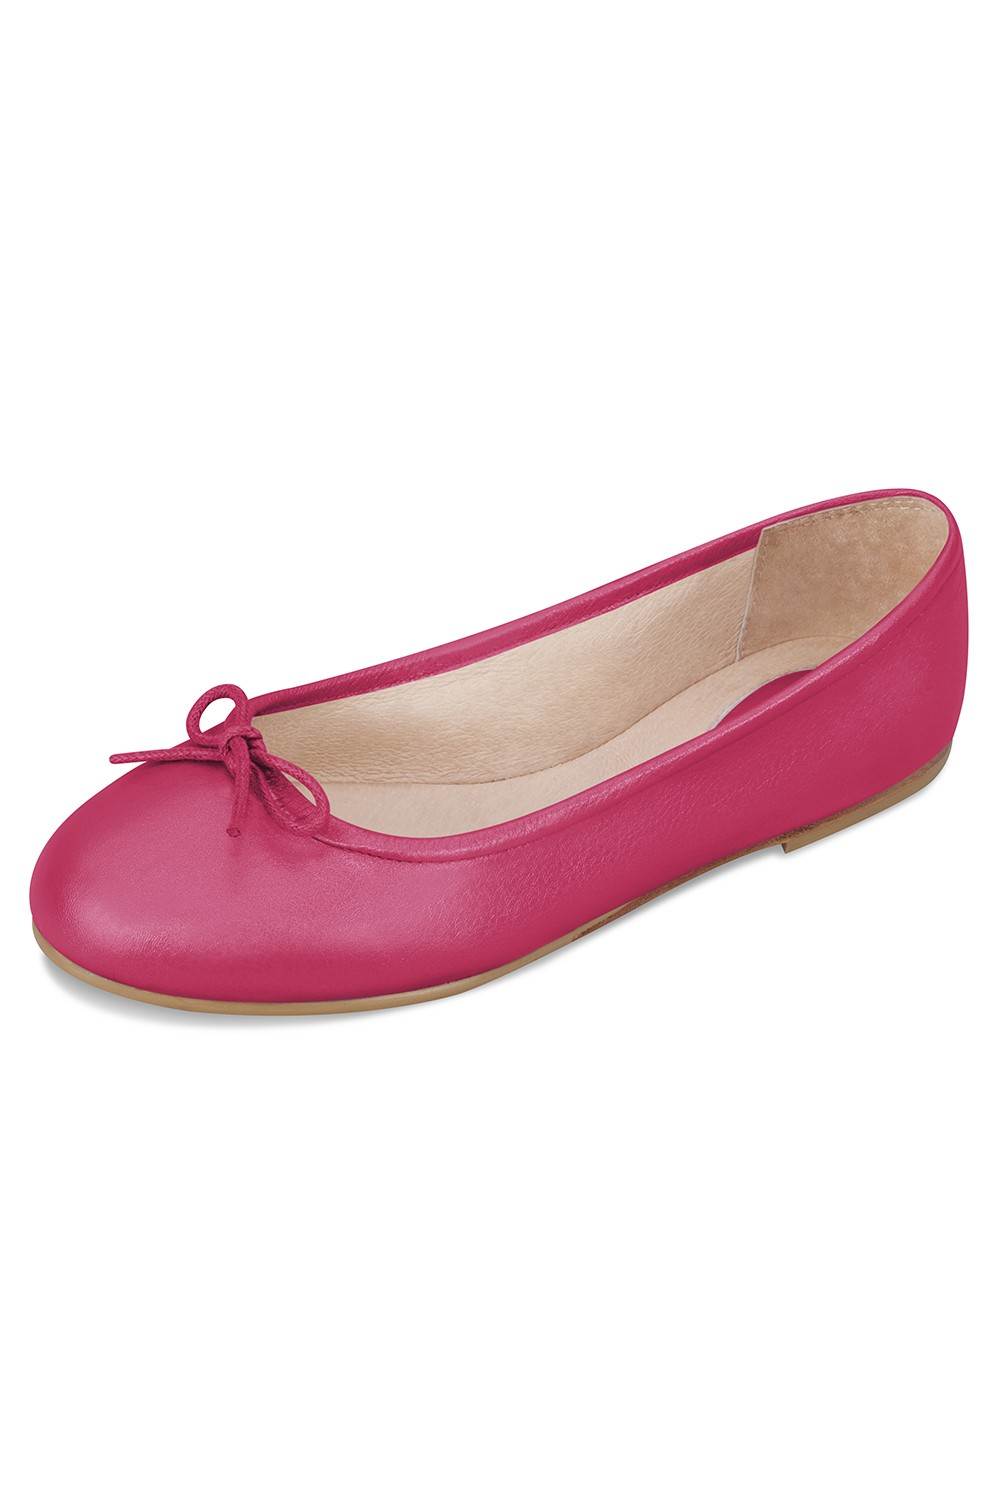 Arabella Girls Ballet Flats Girls Fashion Shoes